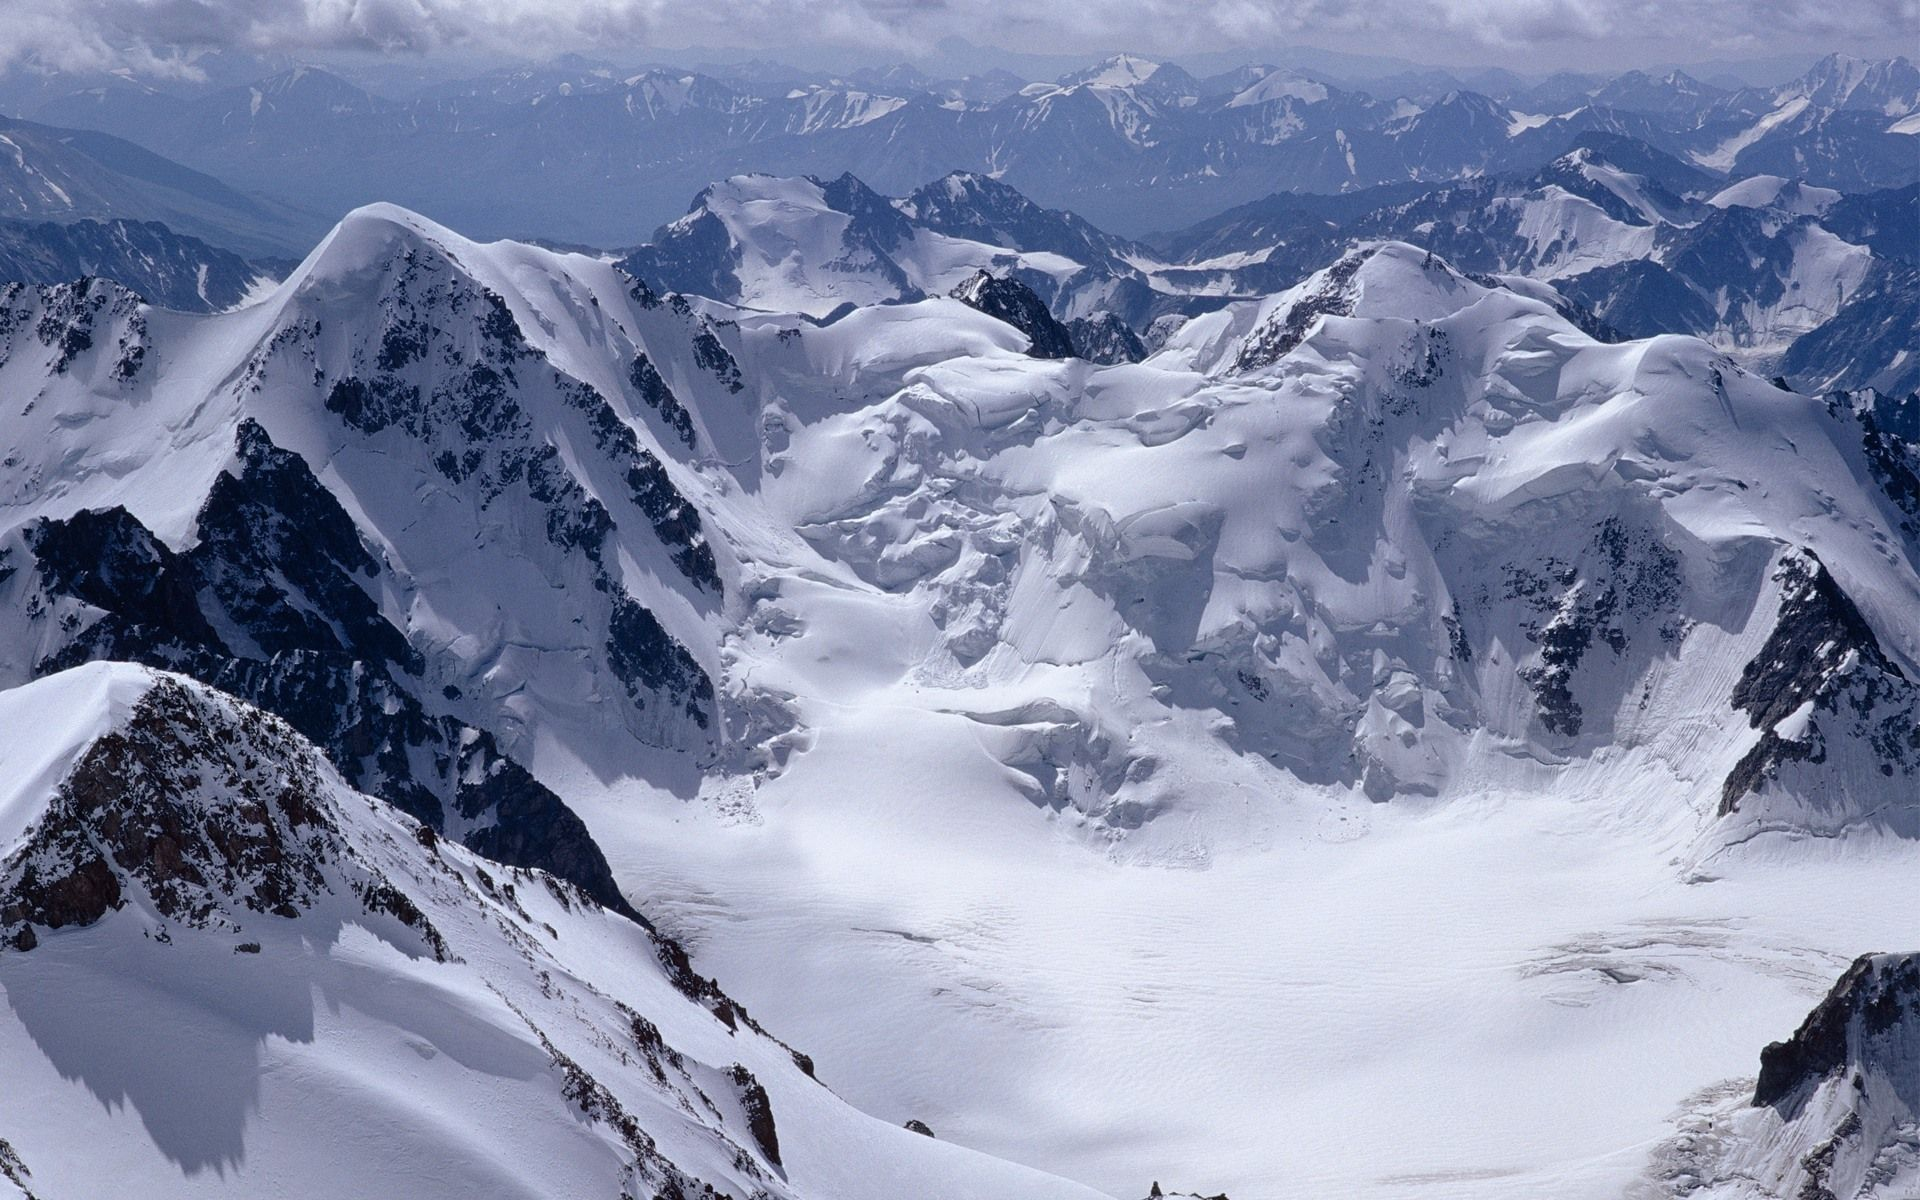 Snowy mountains [ wallpaper Nature wallpapers